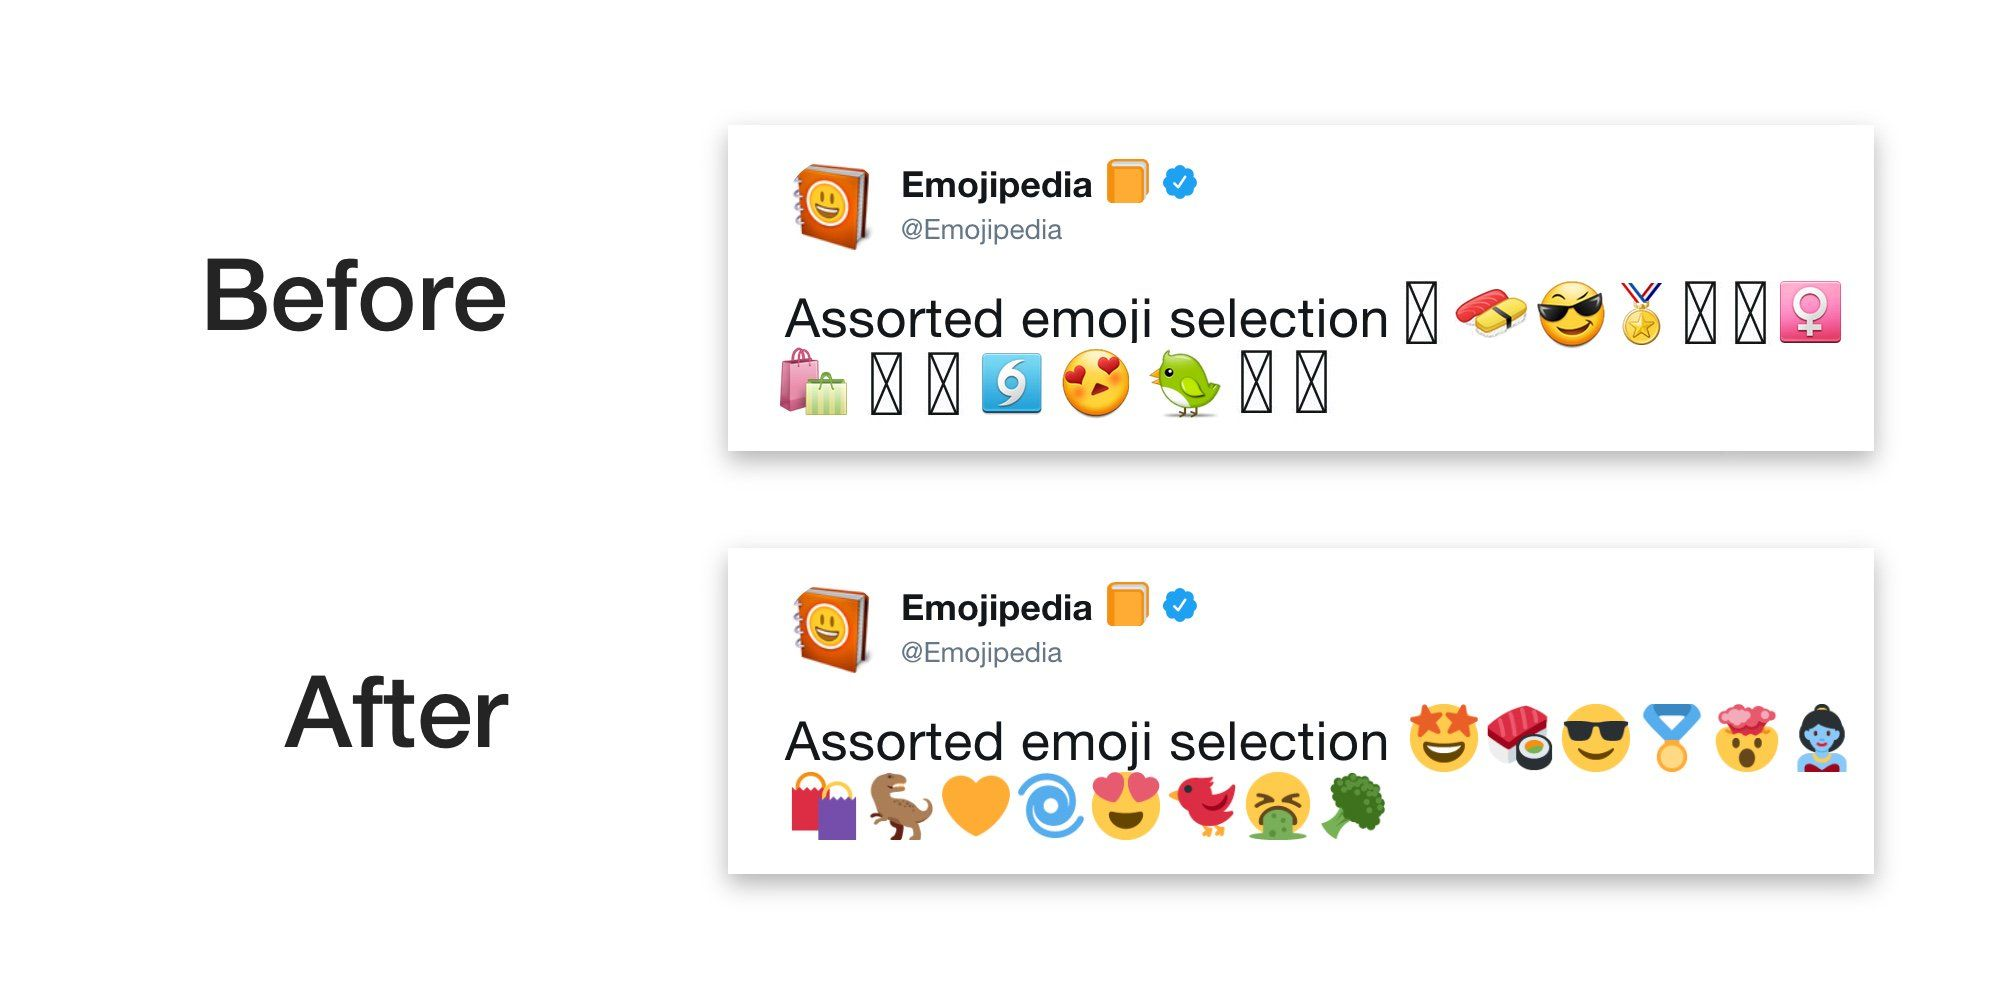 Twitter Is Now Using Its Own Emoji Tweemoji On Android Emoji Android Applications Android